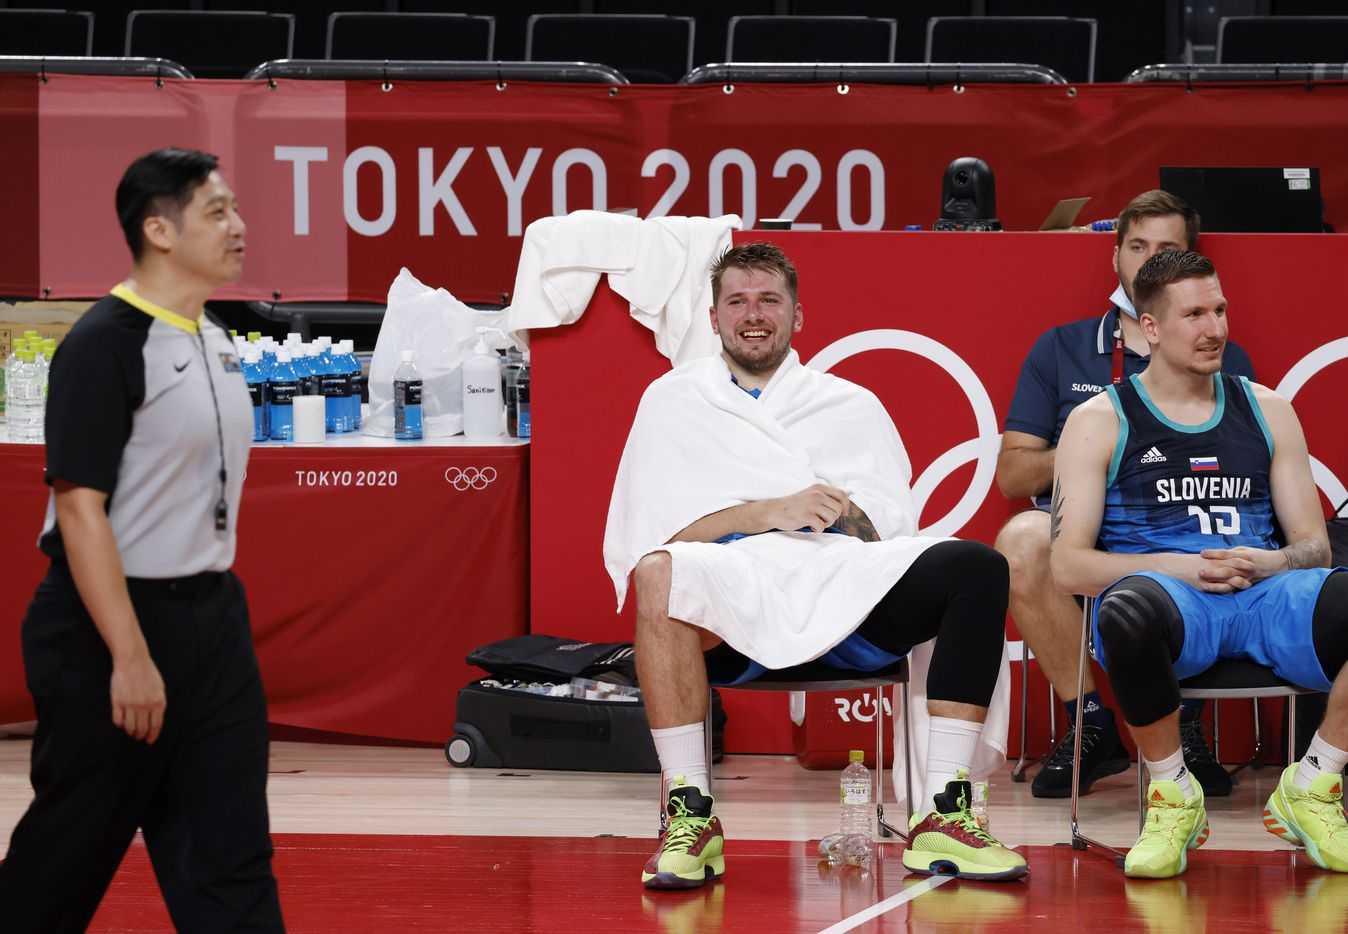 Slovenia's Luka Doncic (77) laughs in the final minutes of play in the second half against Argentina during the postponed 2020 Tokyo Olympics at Saitama Super Arena on Monday, July 26, 2021, in Saitama, Japan. Slovenia defeated Argentina 118-100. (Vernon Bryant/The Dallas Morning News)